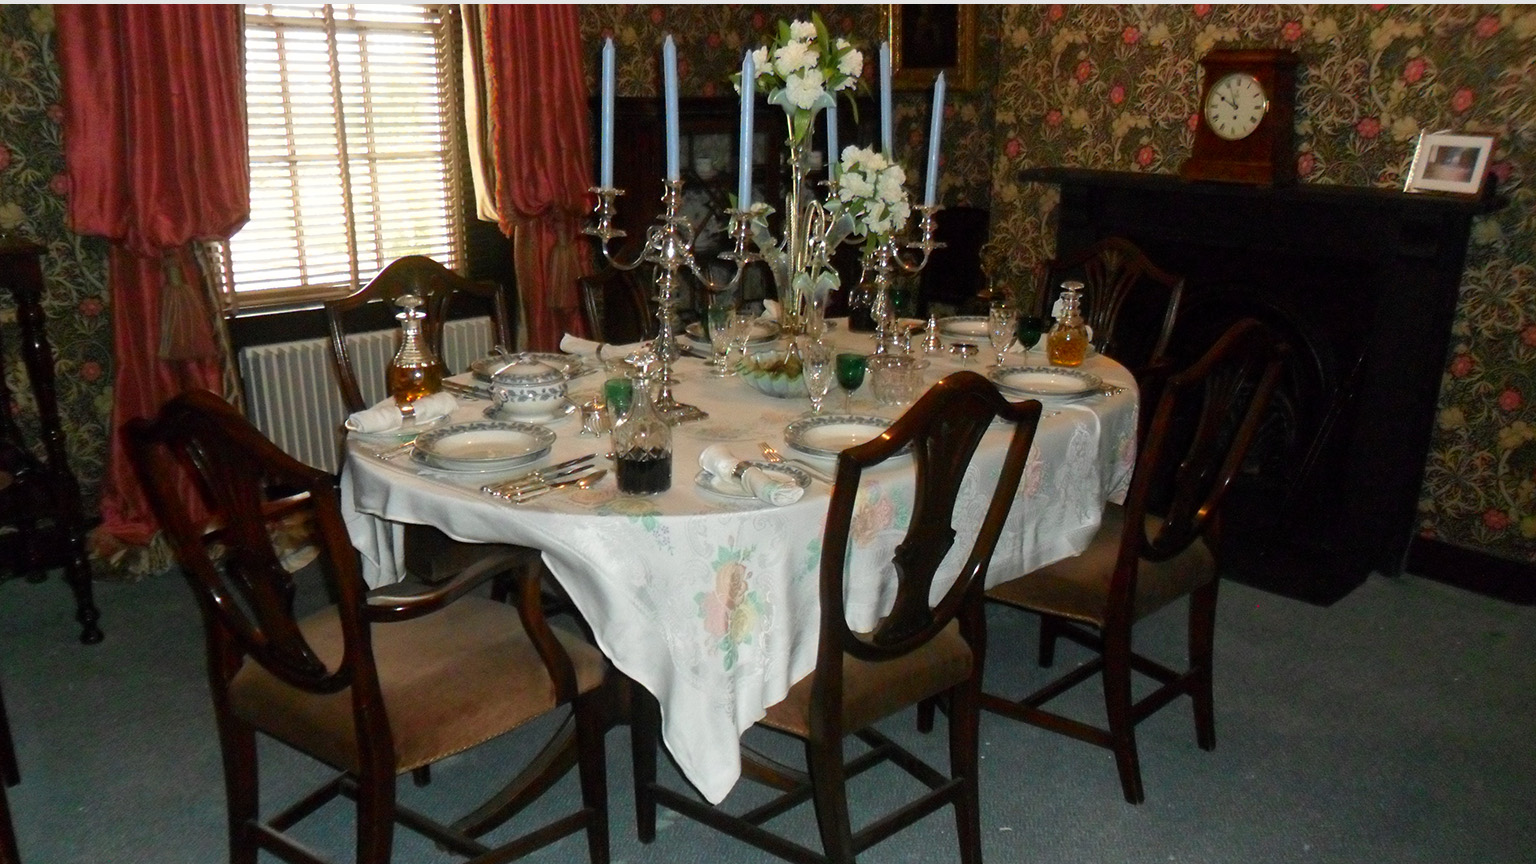 The dining room at Milford House